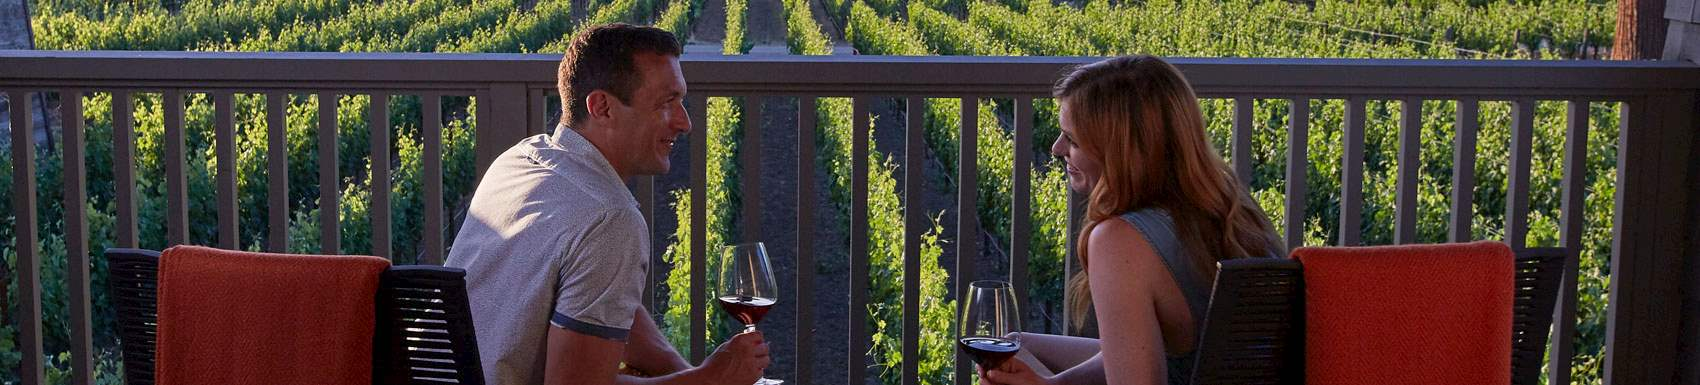 Special Offers at SENZA Hotel, Napa